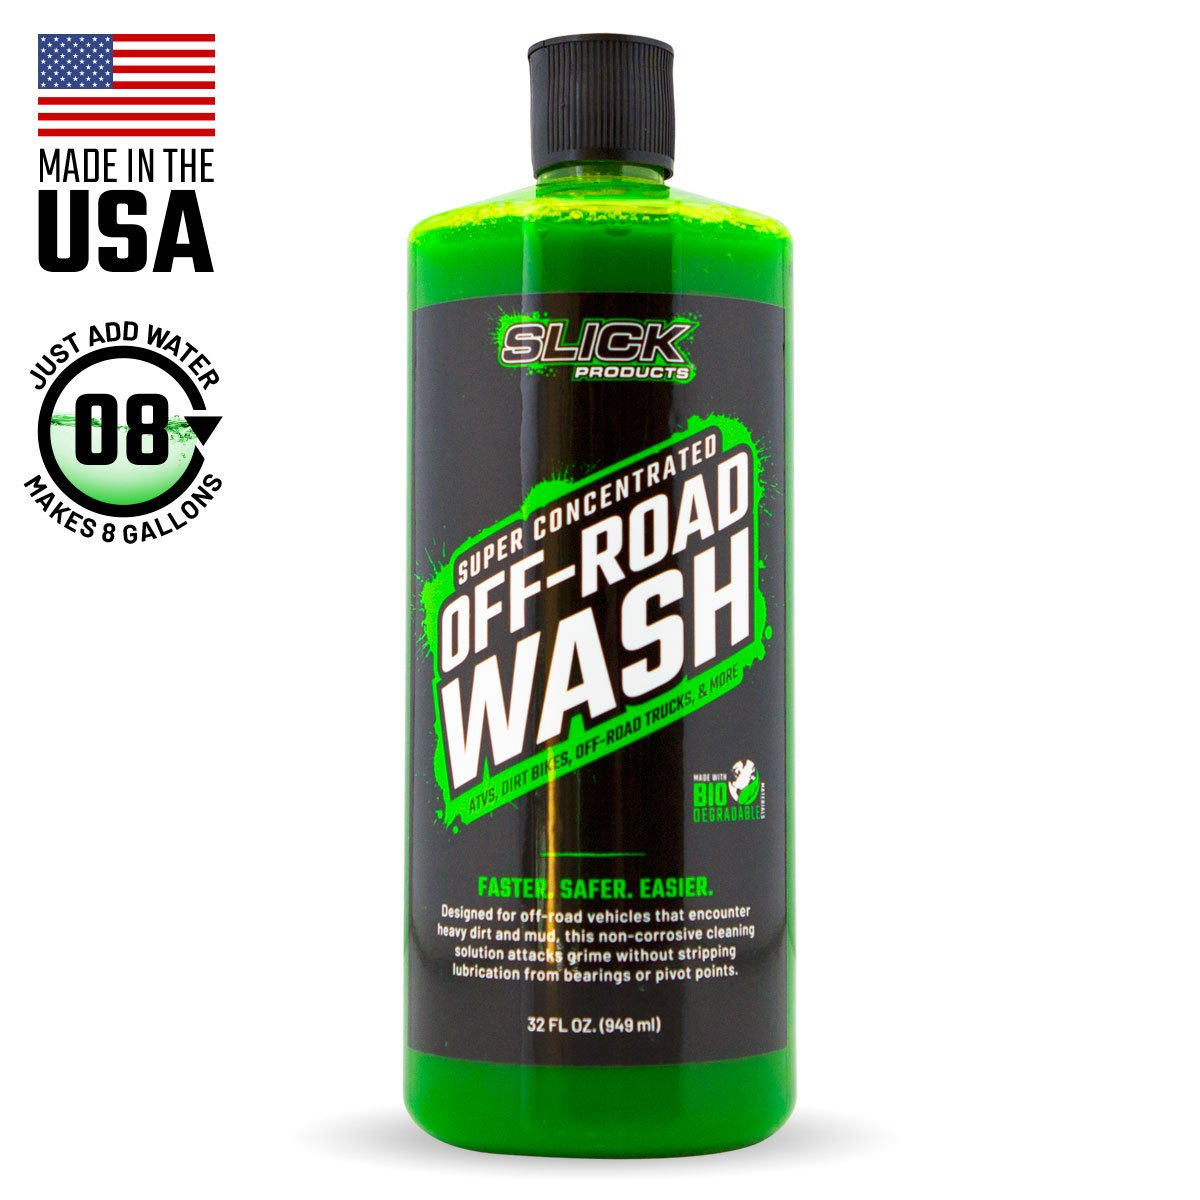 Slick Off-Road Wash, 32oz. by Slick Products